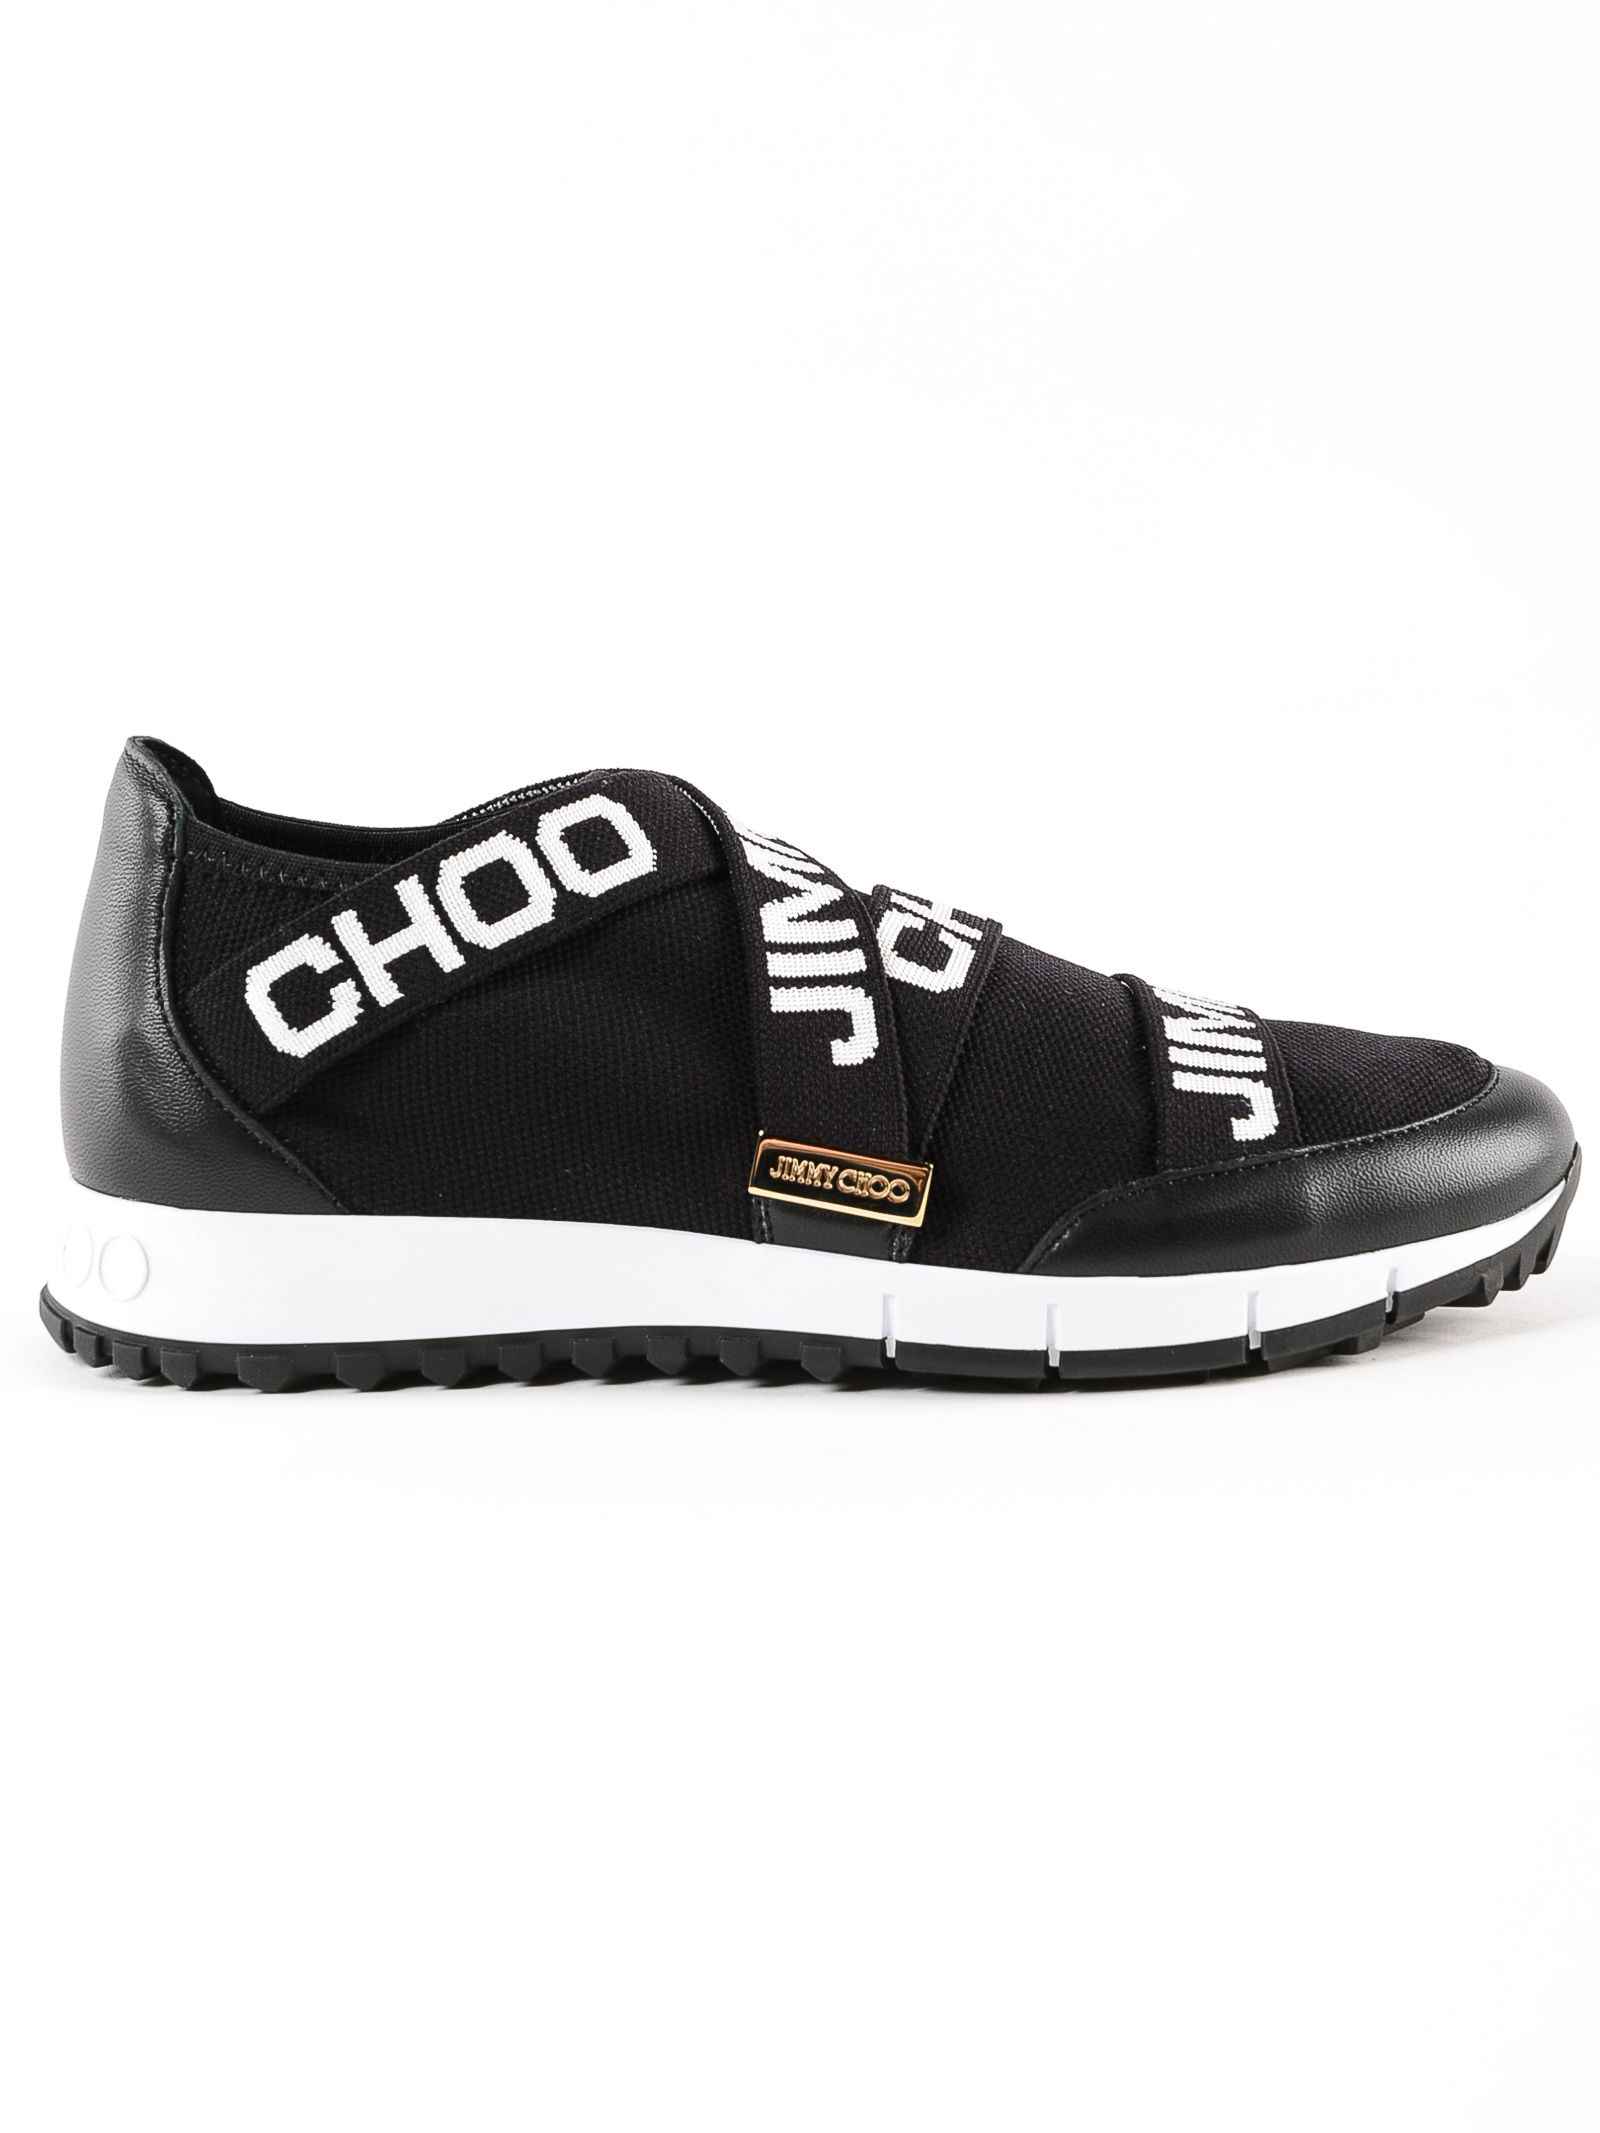 Jimmy Choo Toronto Sneakers